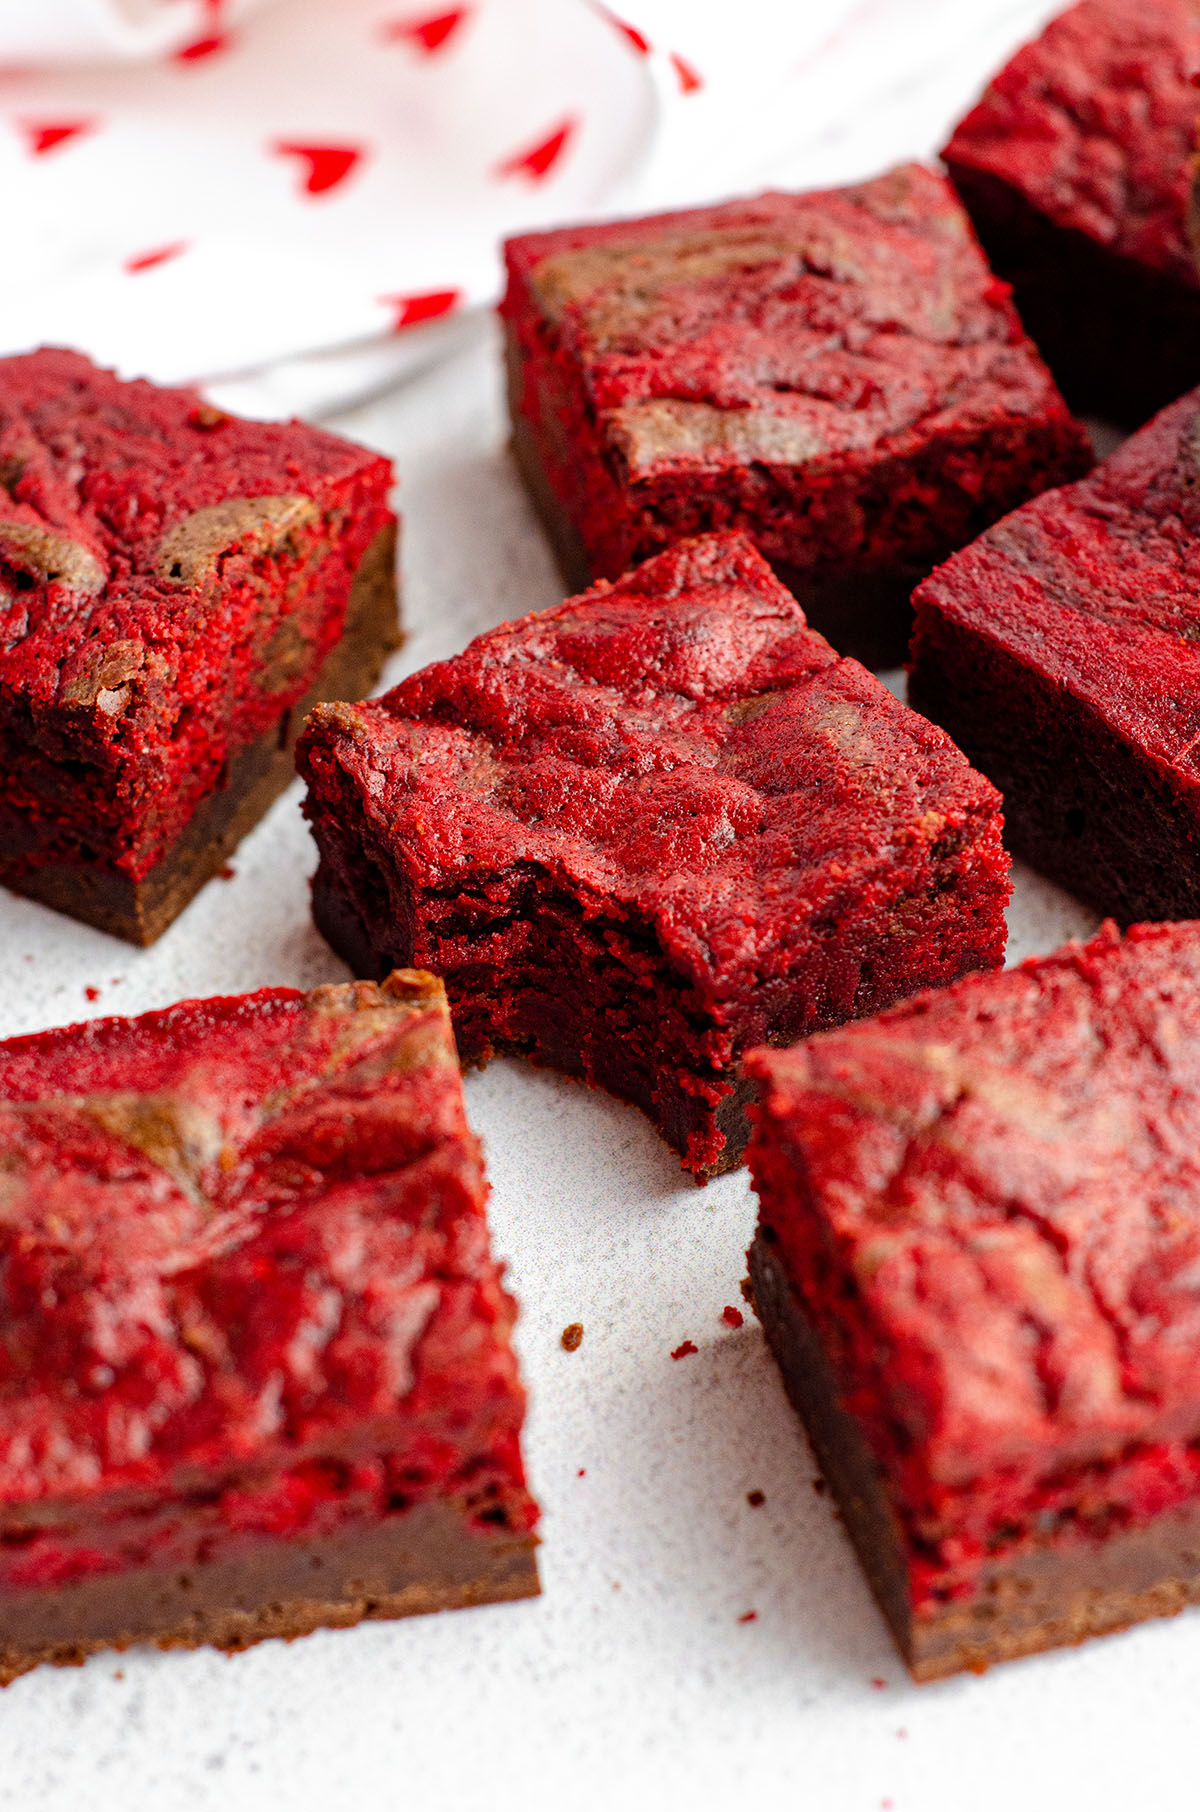 red velvet brownie with a bite taken out of it